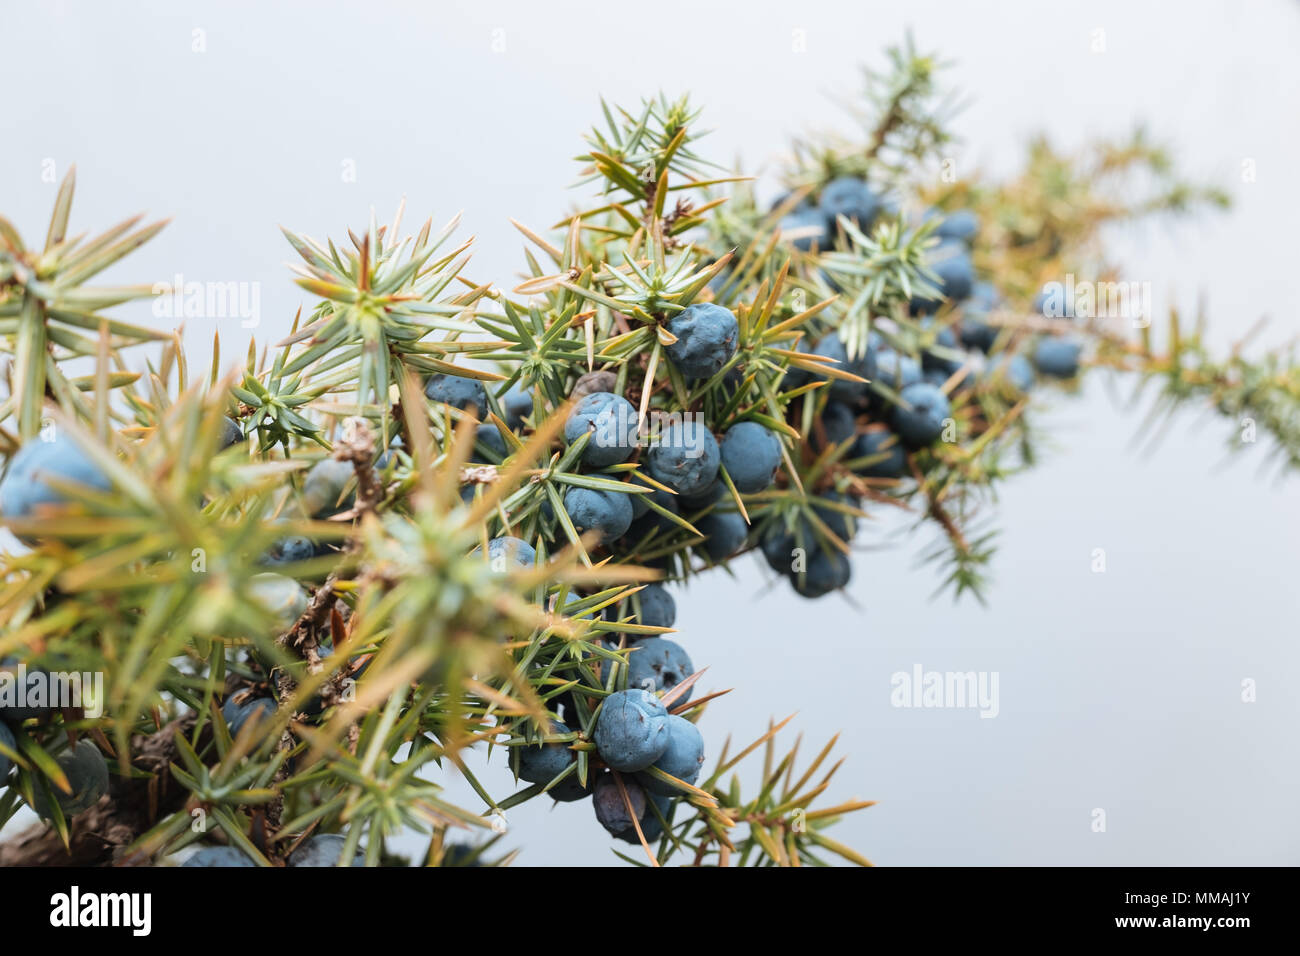 Close up of a branch of wild juniper (Juniperus Communis), filled with many purple berries. - Stock Image